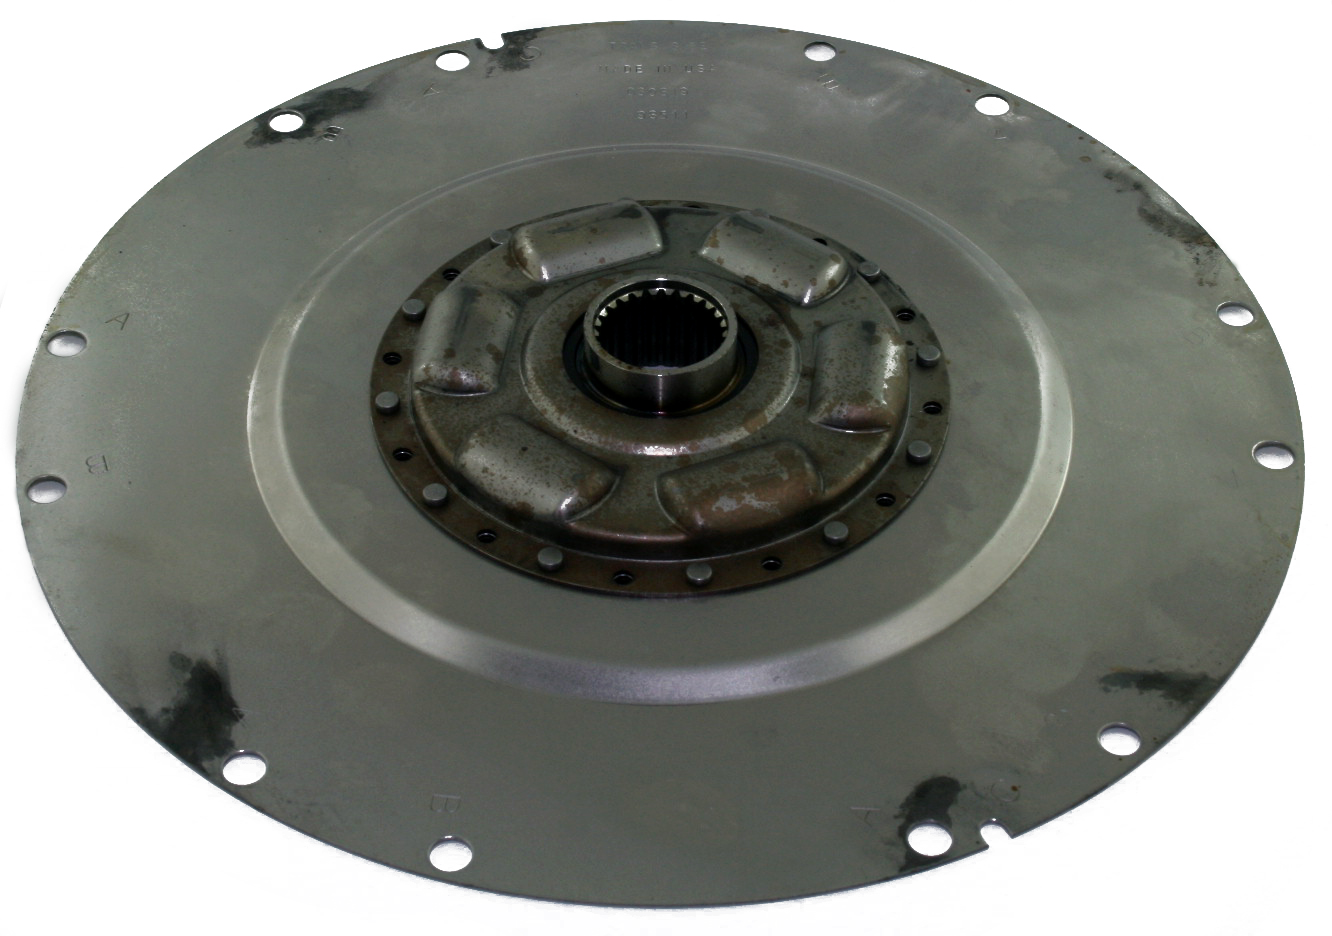 Drive Damper for Hurth ZF or Velvet Drive 5000 Marine Transmissions